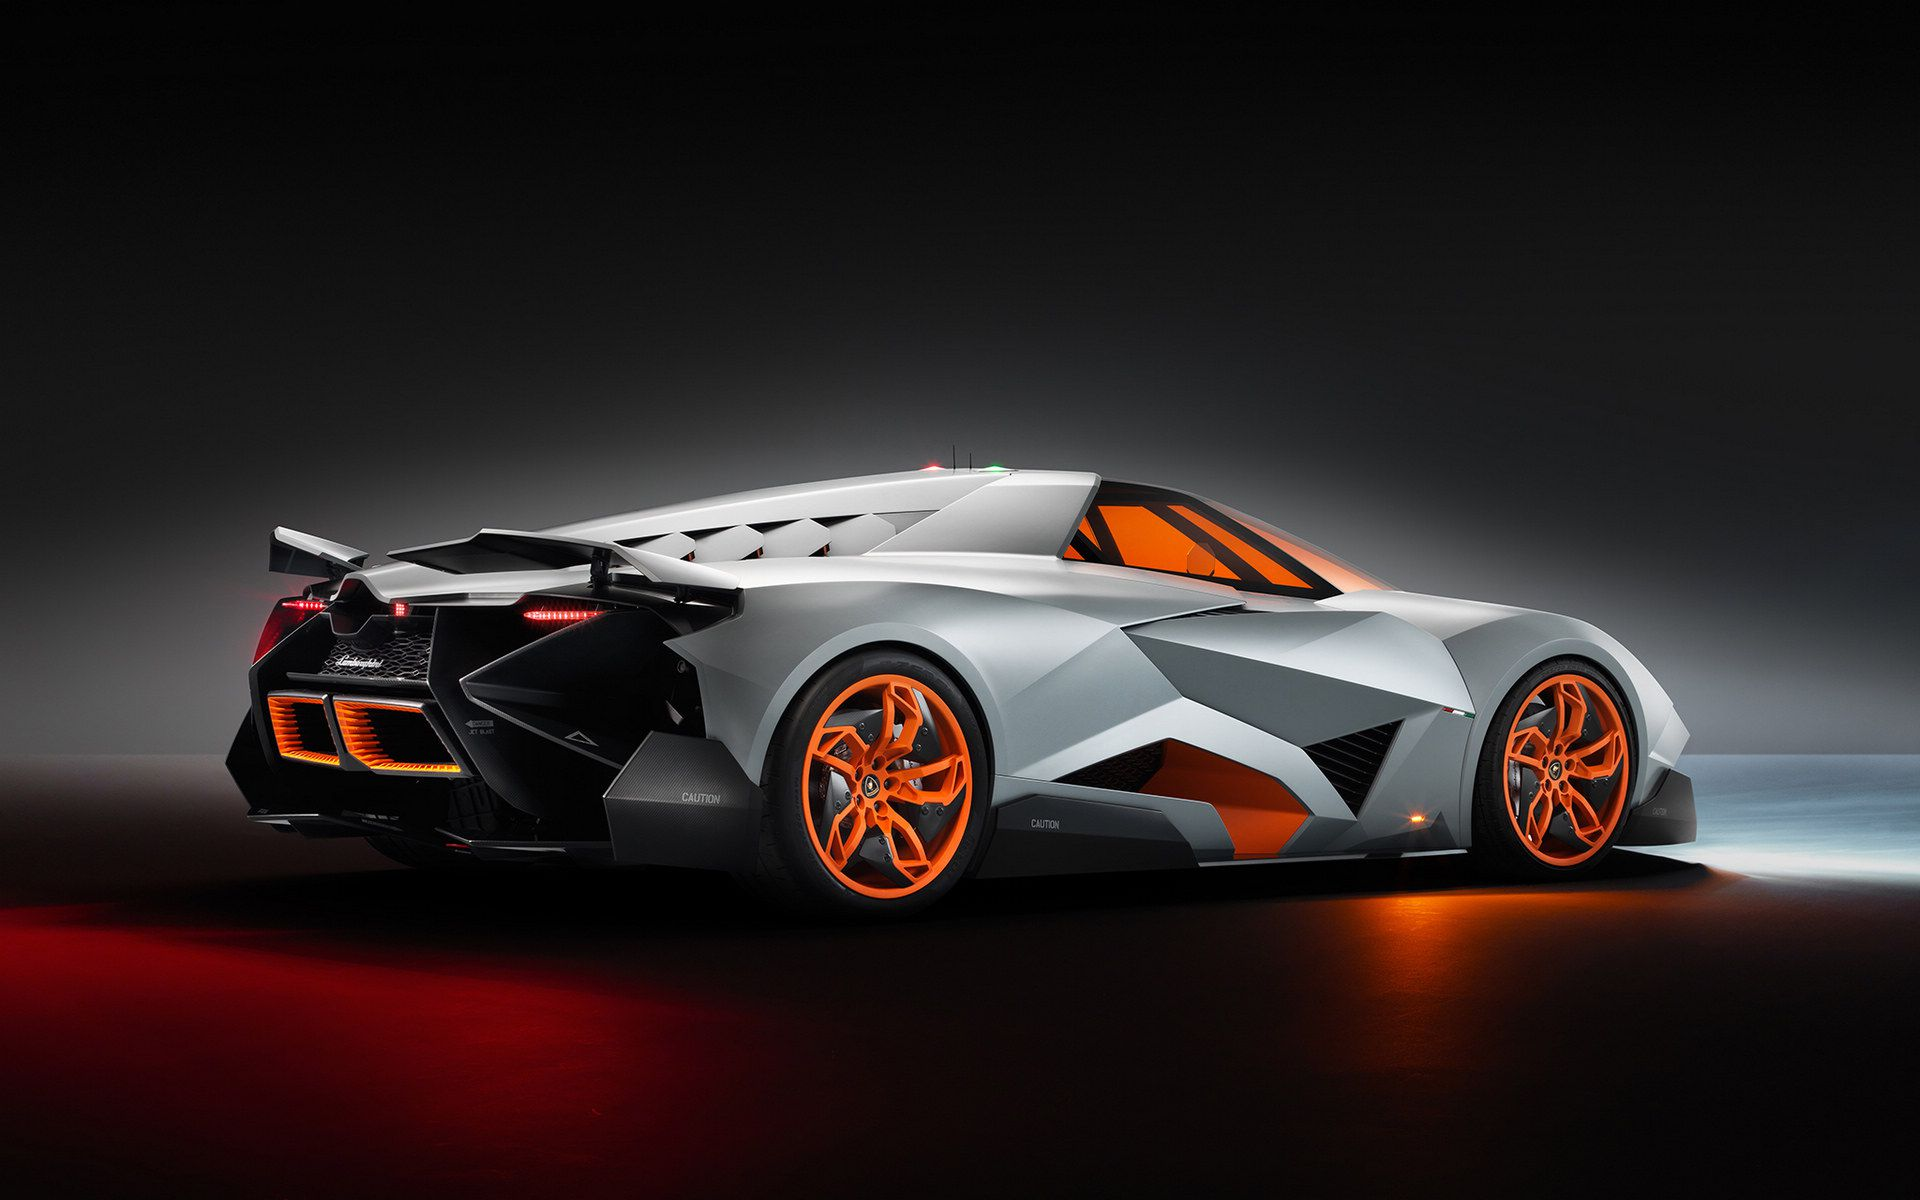 Download Lamborghini Egoista Supercar backgrounds - HD Wallpaper Download